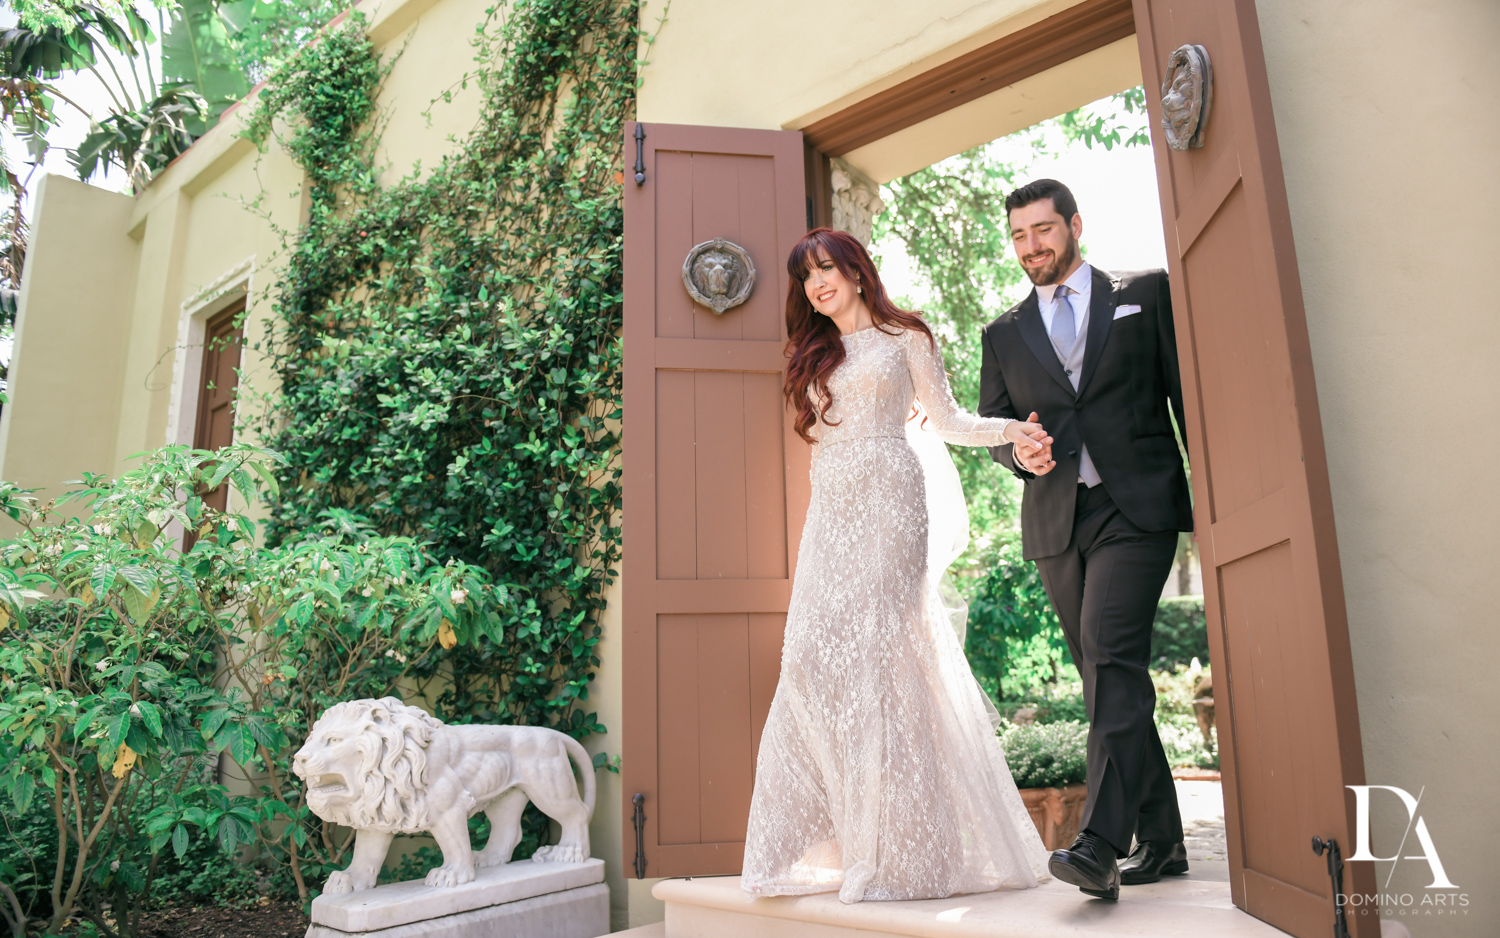 fun photos at Vintage Garden Wedding at Flagler Museum Palm Beach by Domino Arts Photography